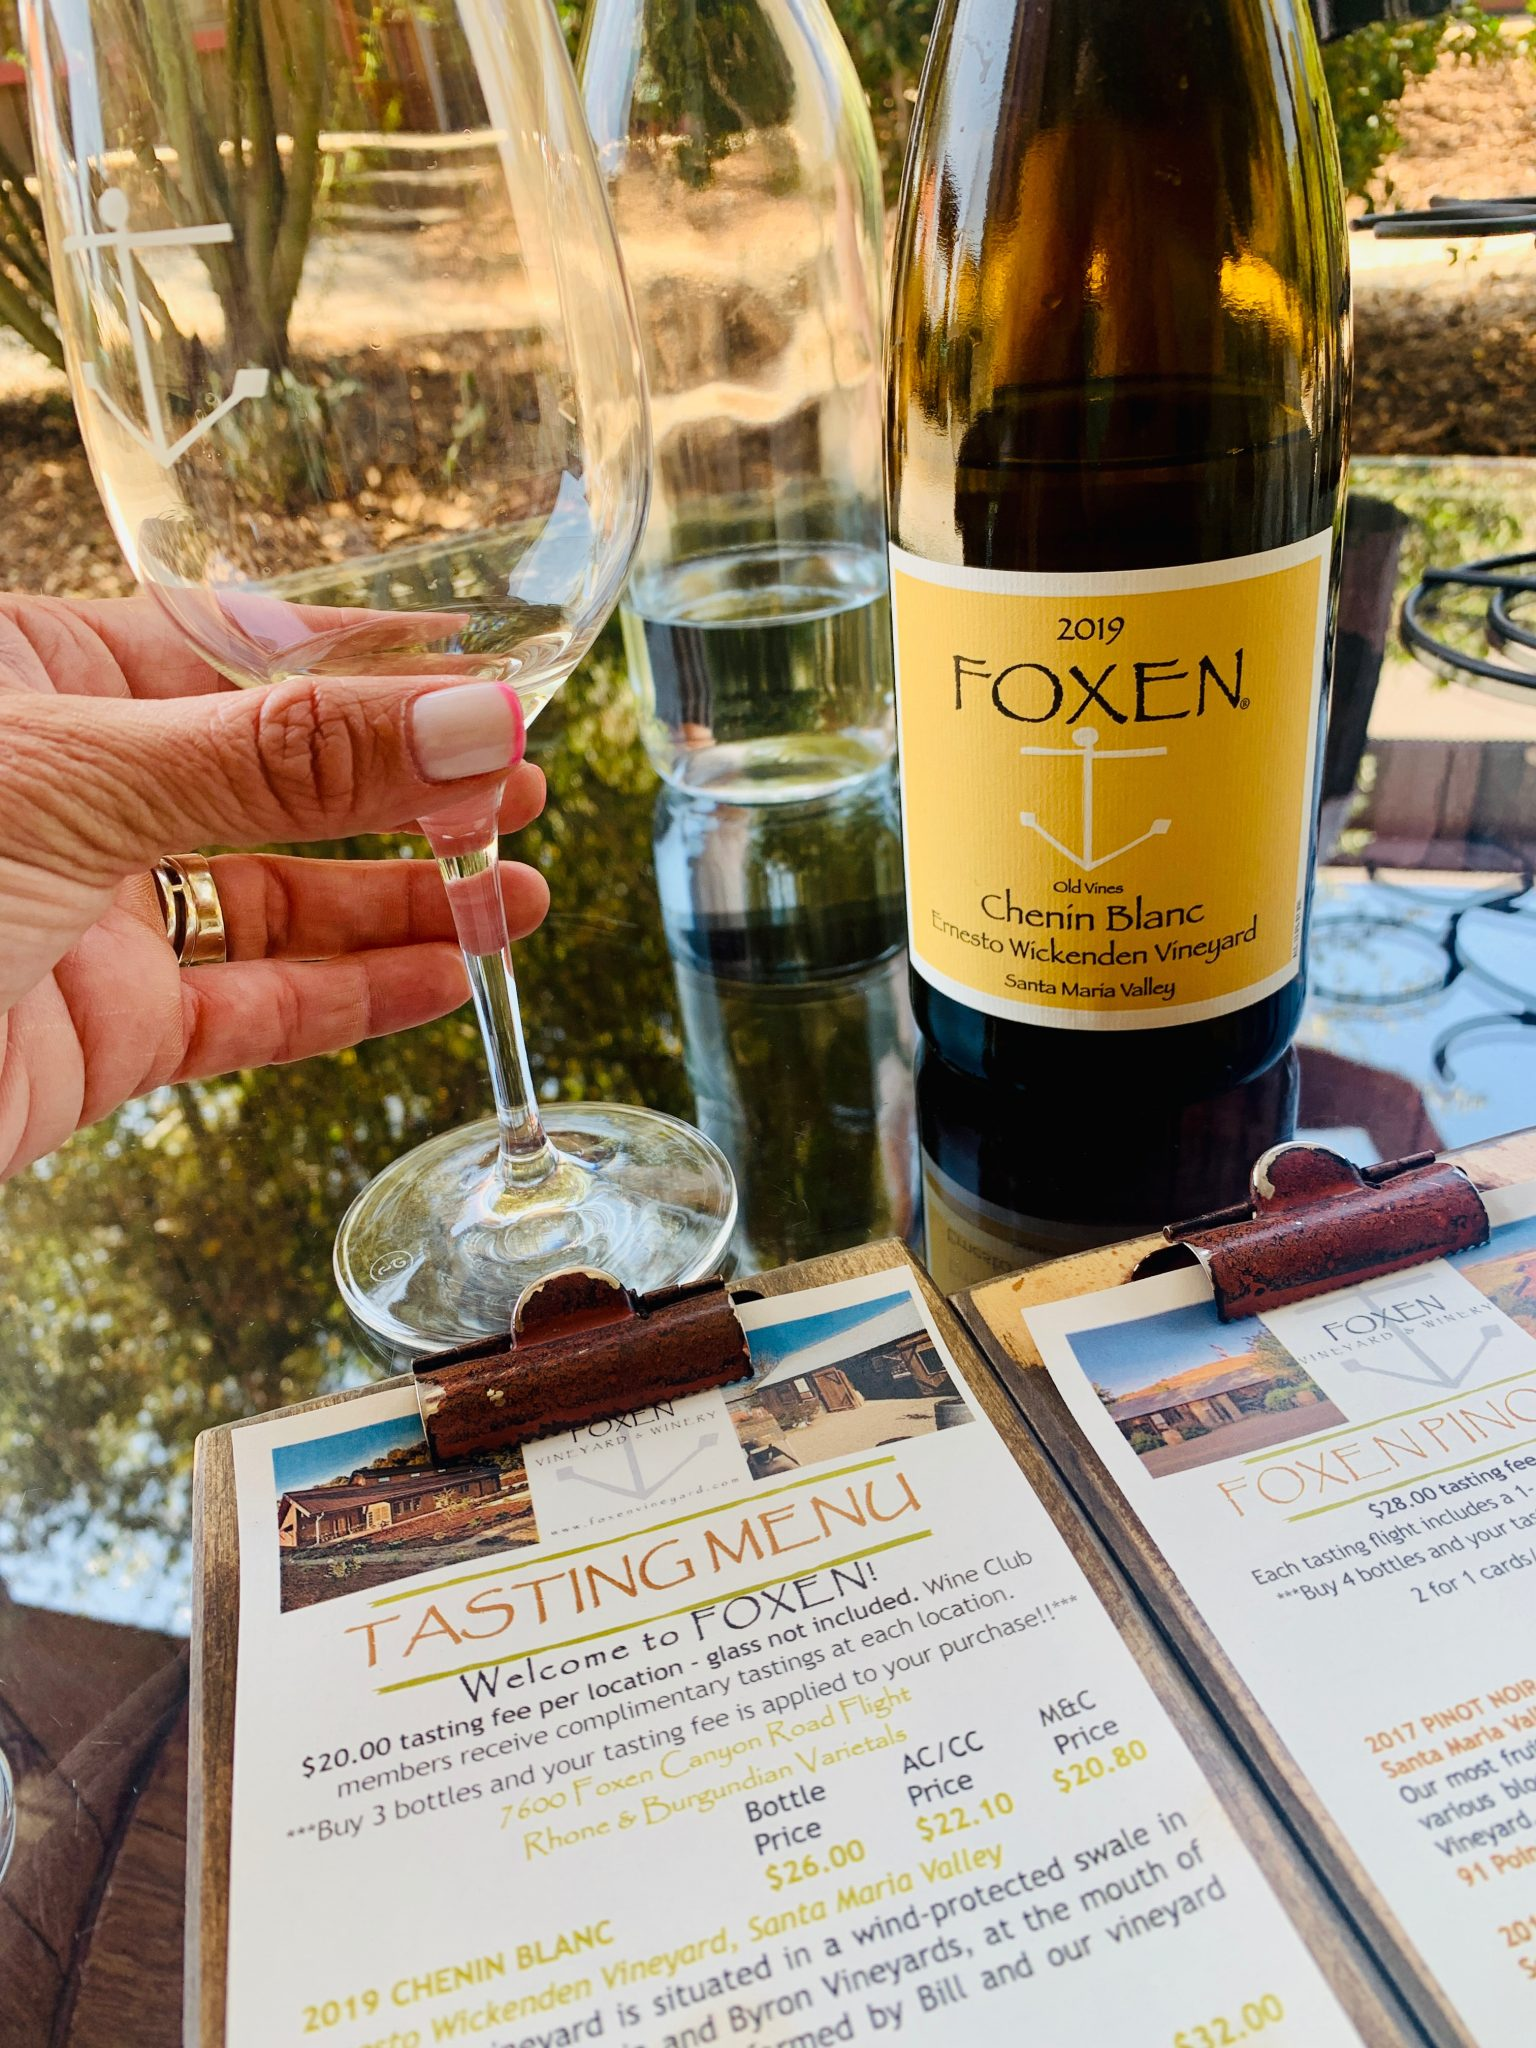 foxen winery on our girls weekend away